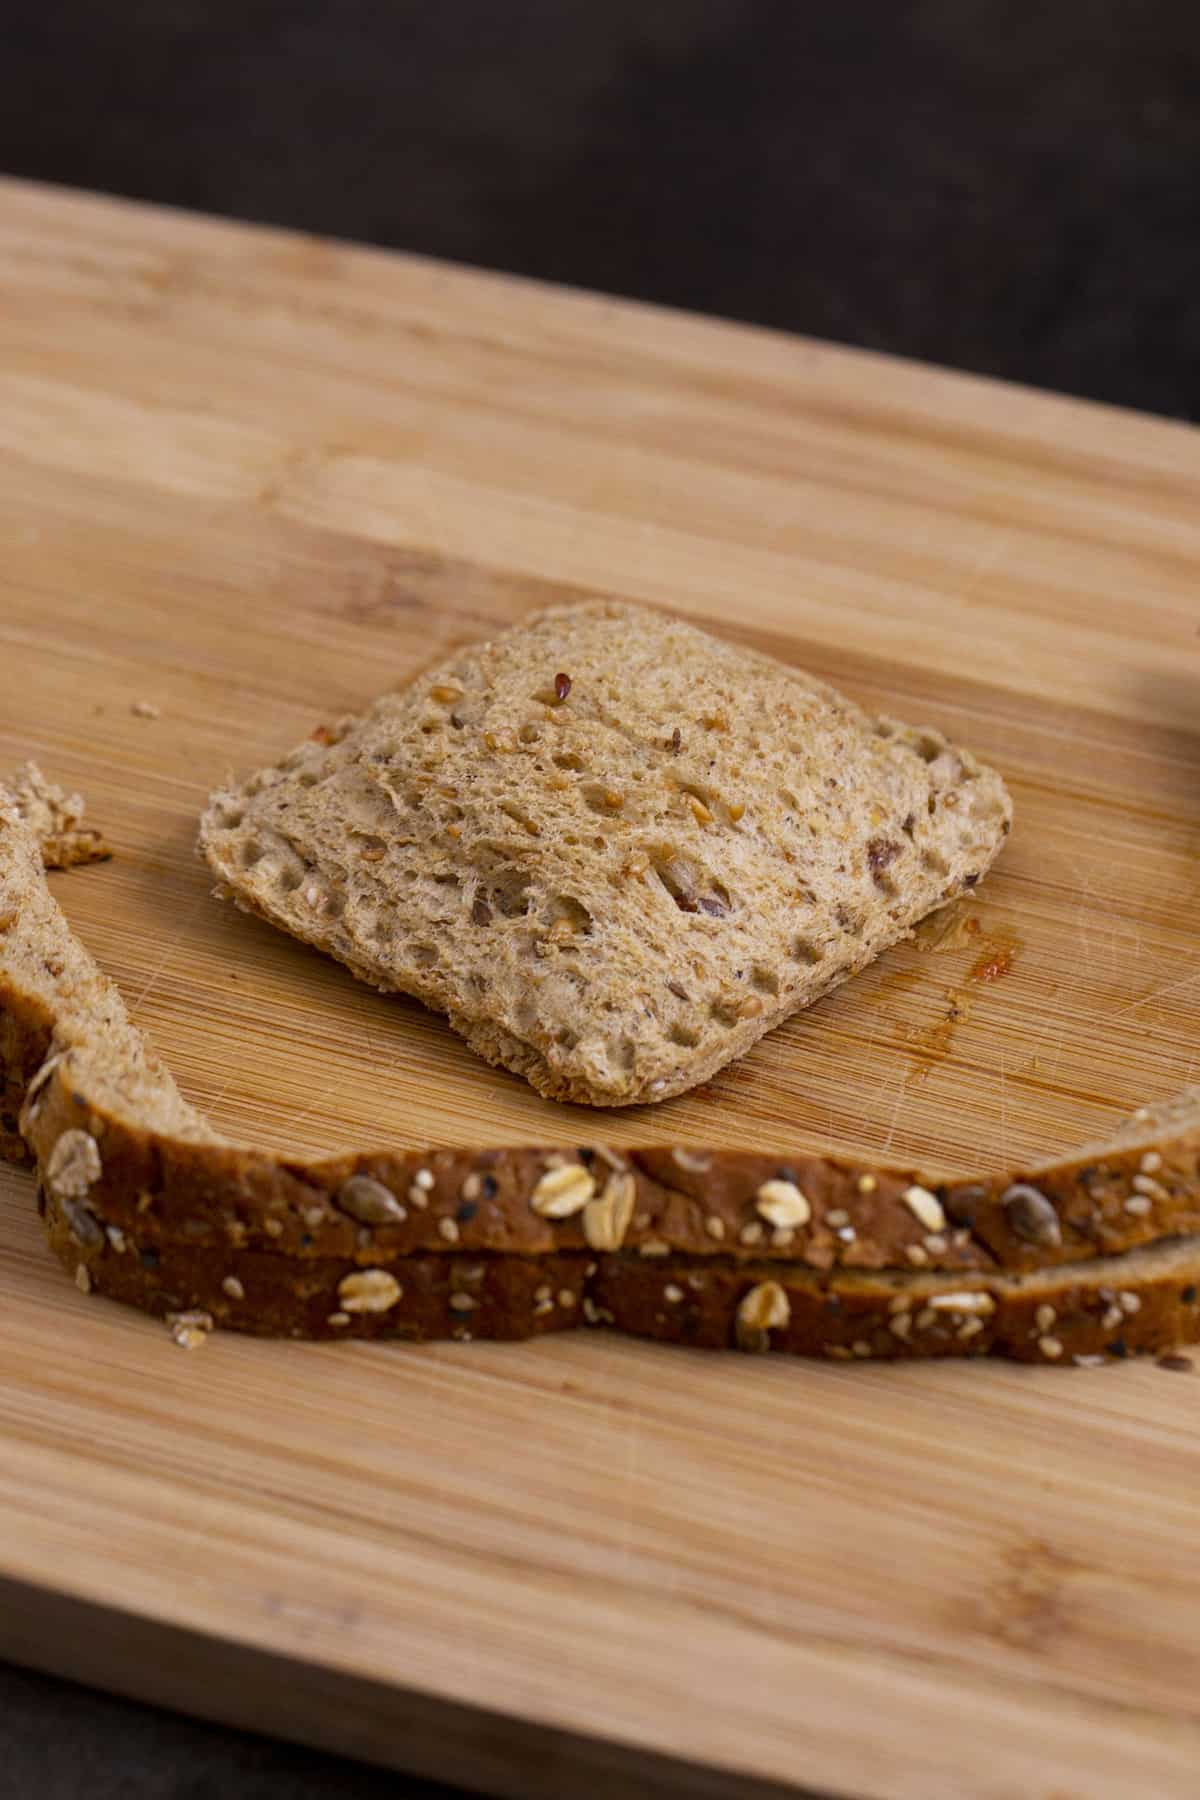 Remove sandwich sealer to reveal completed DIY uncrustables sandwich. Reserve crusts for homemade breadcrumbs, croutons, or snacking.